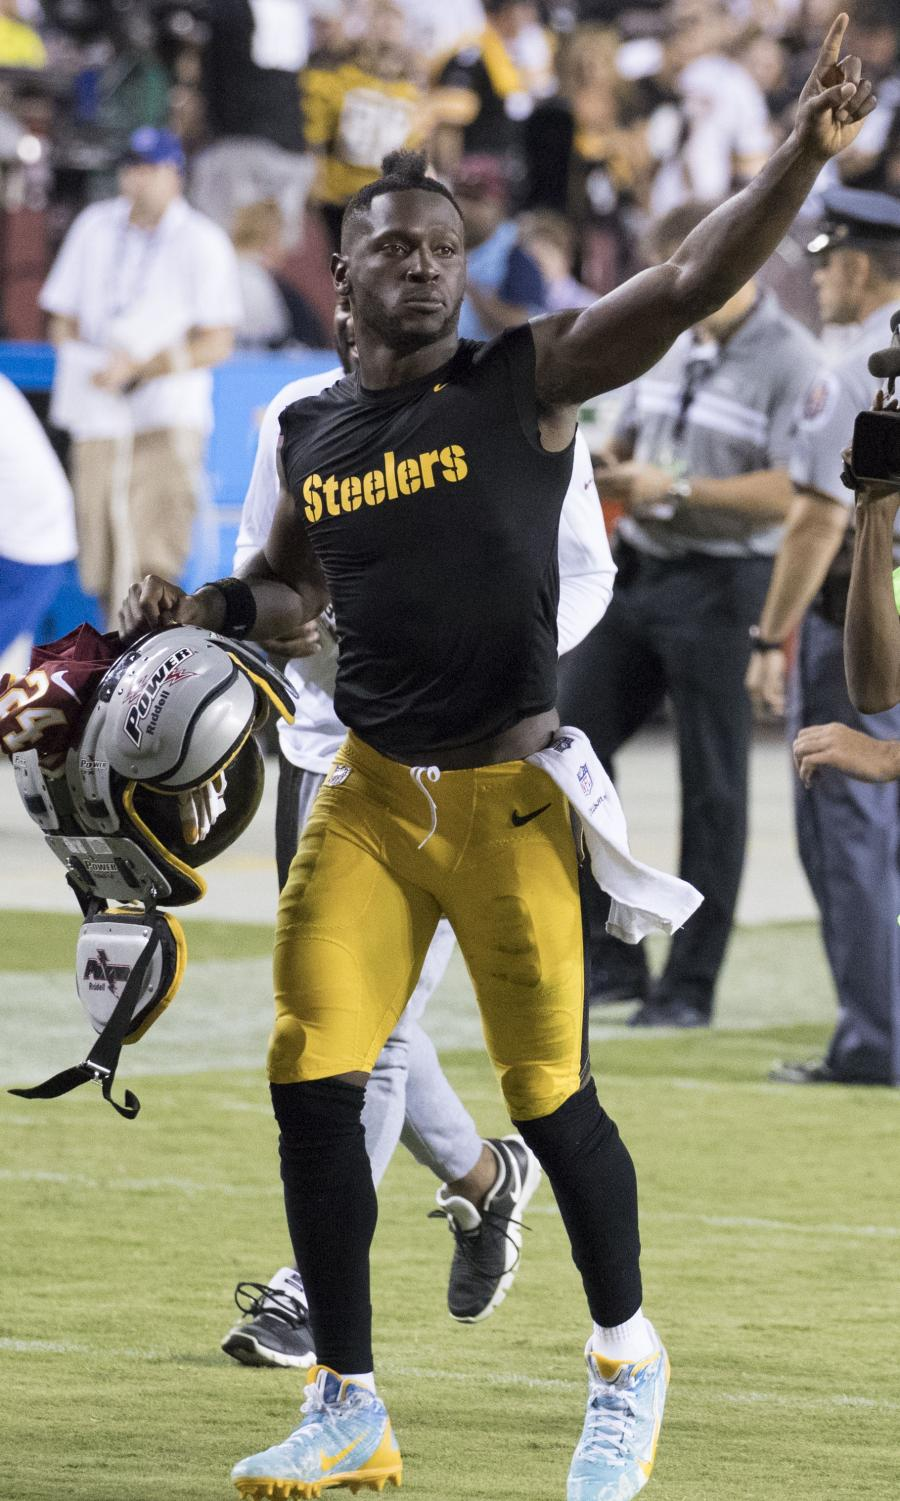 Being the best in the league is not easy, but Antonio Brown made it look effortless until his collapse in 2019. Ruining his career and perhaps his personal life as well, Brown has made dozens of mistakes in a short period of time.